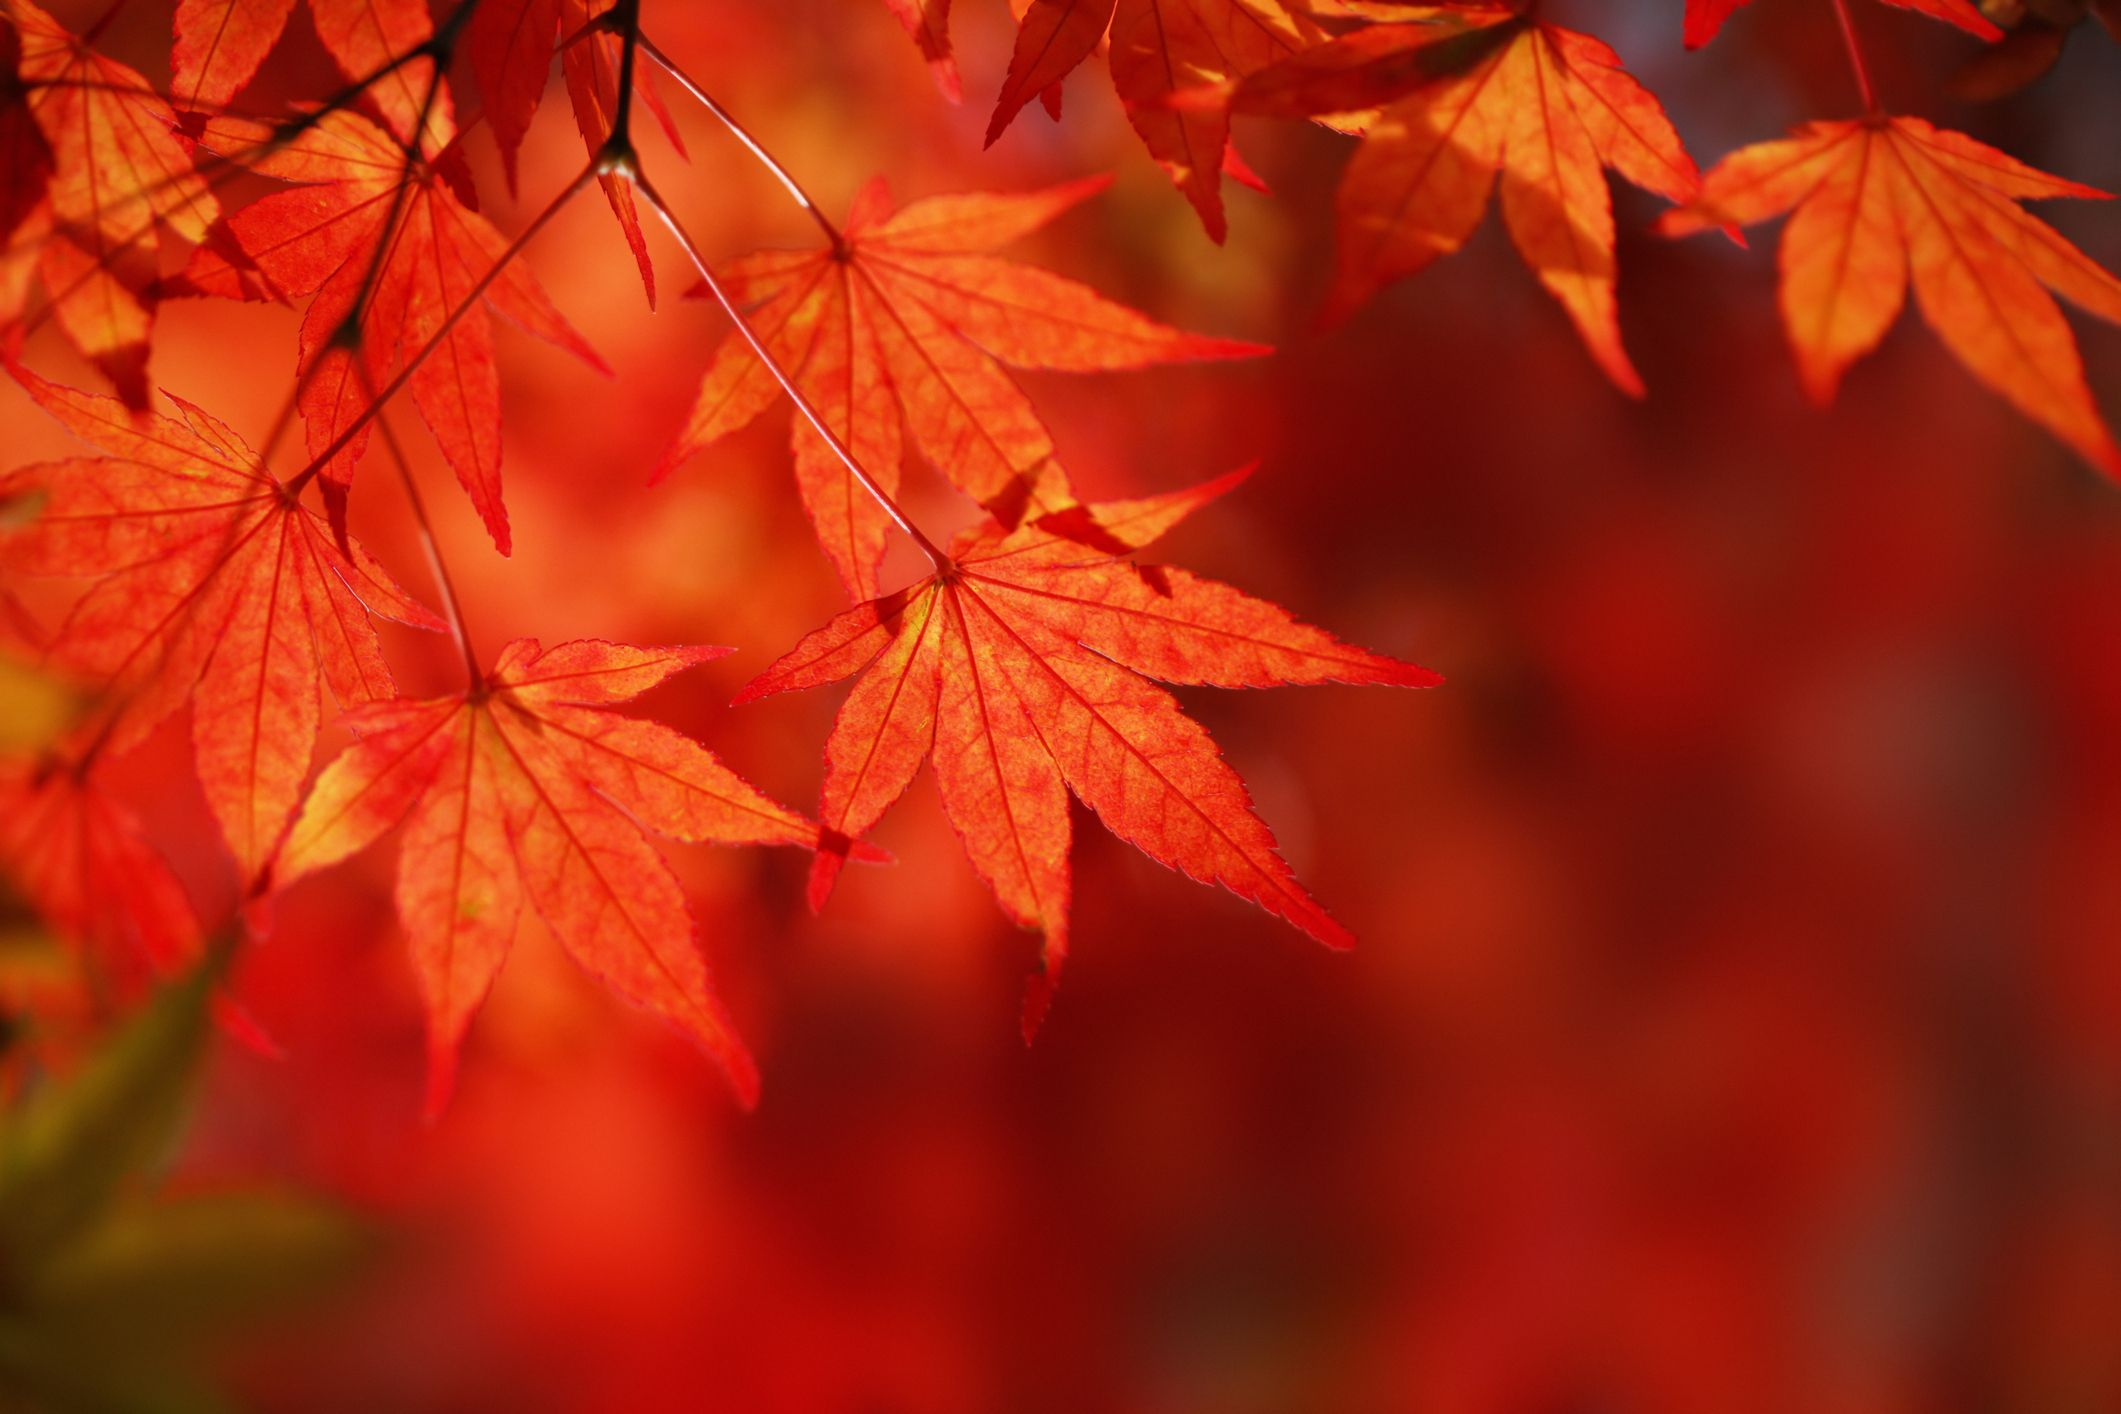 Autumn Leaf Fall Wallpaper 10 Best Places To See New England Fall Foliage 2018